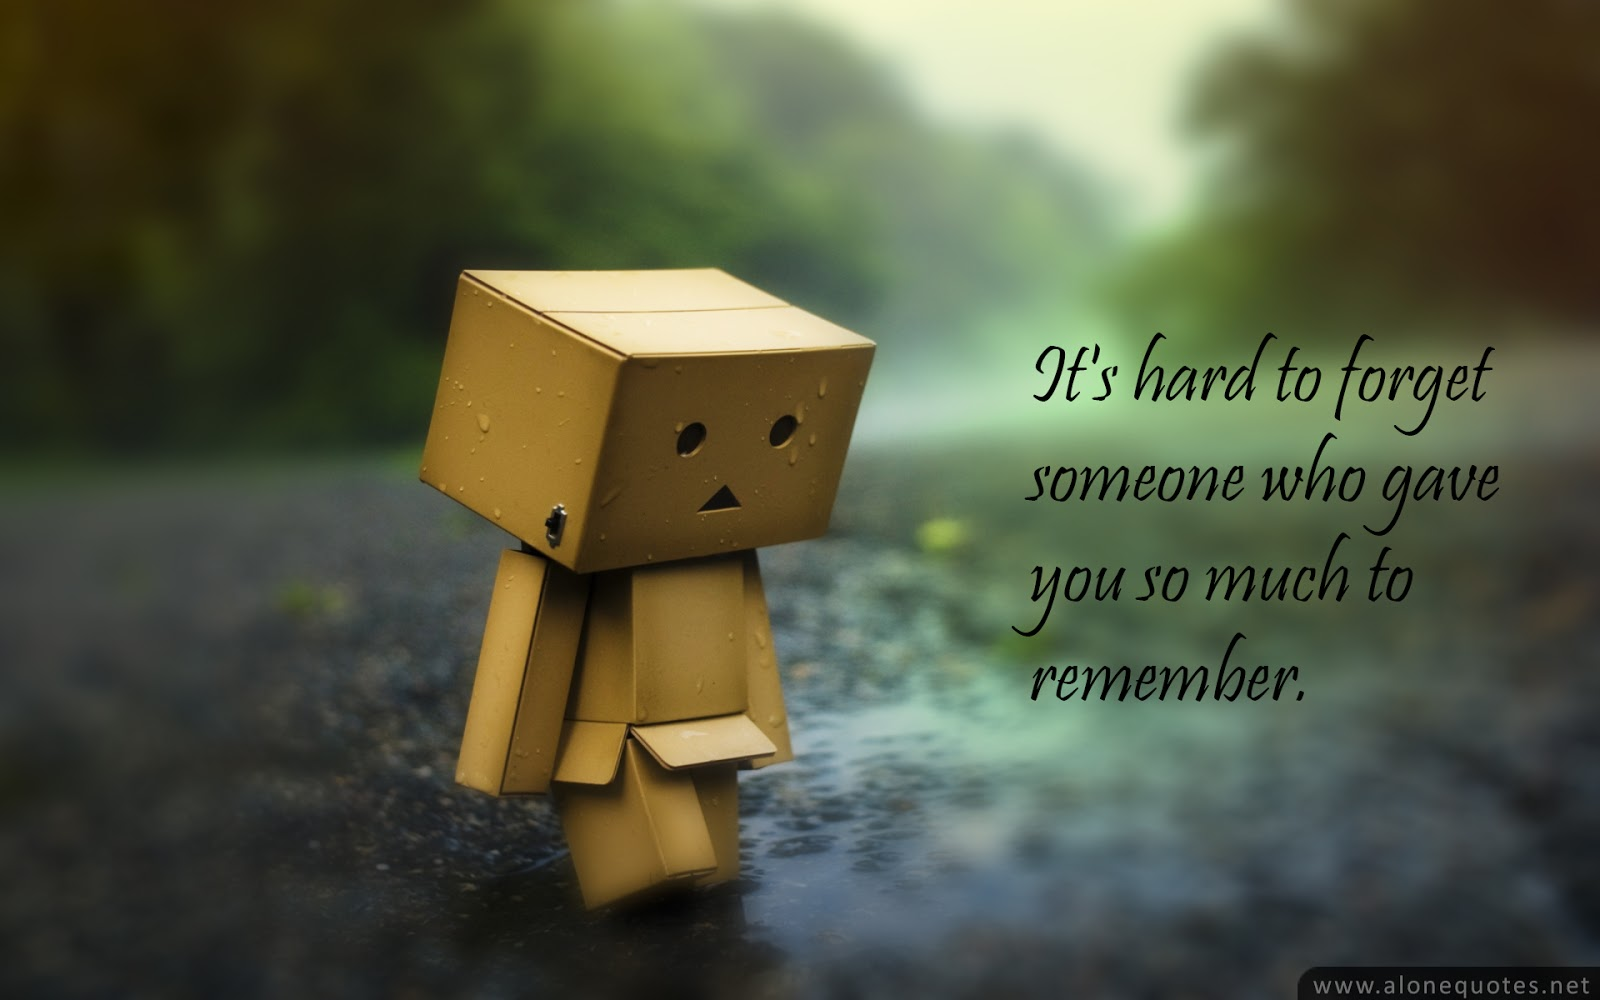 sad alone love wallpapers with quotes download 2013 1600x1000